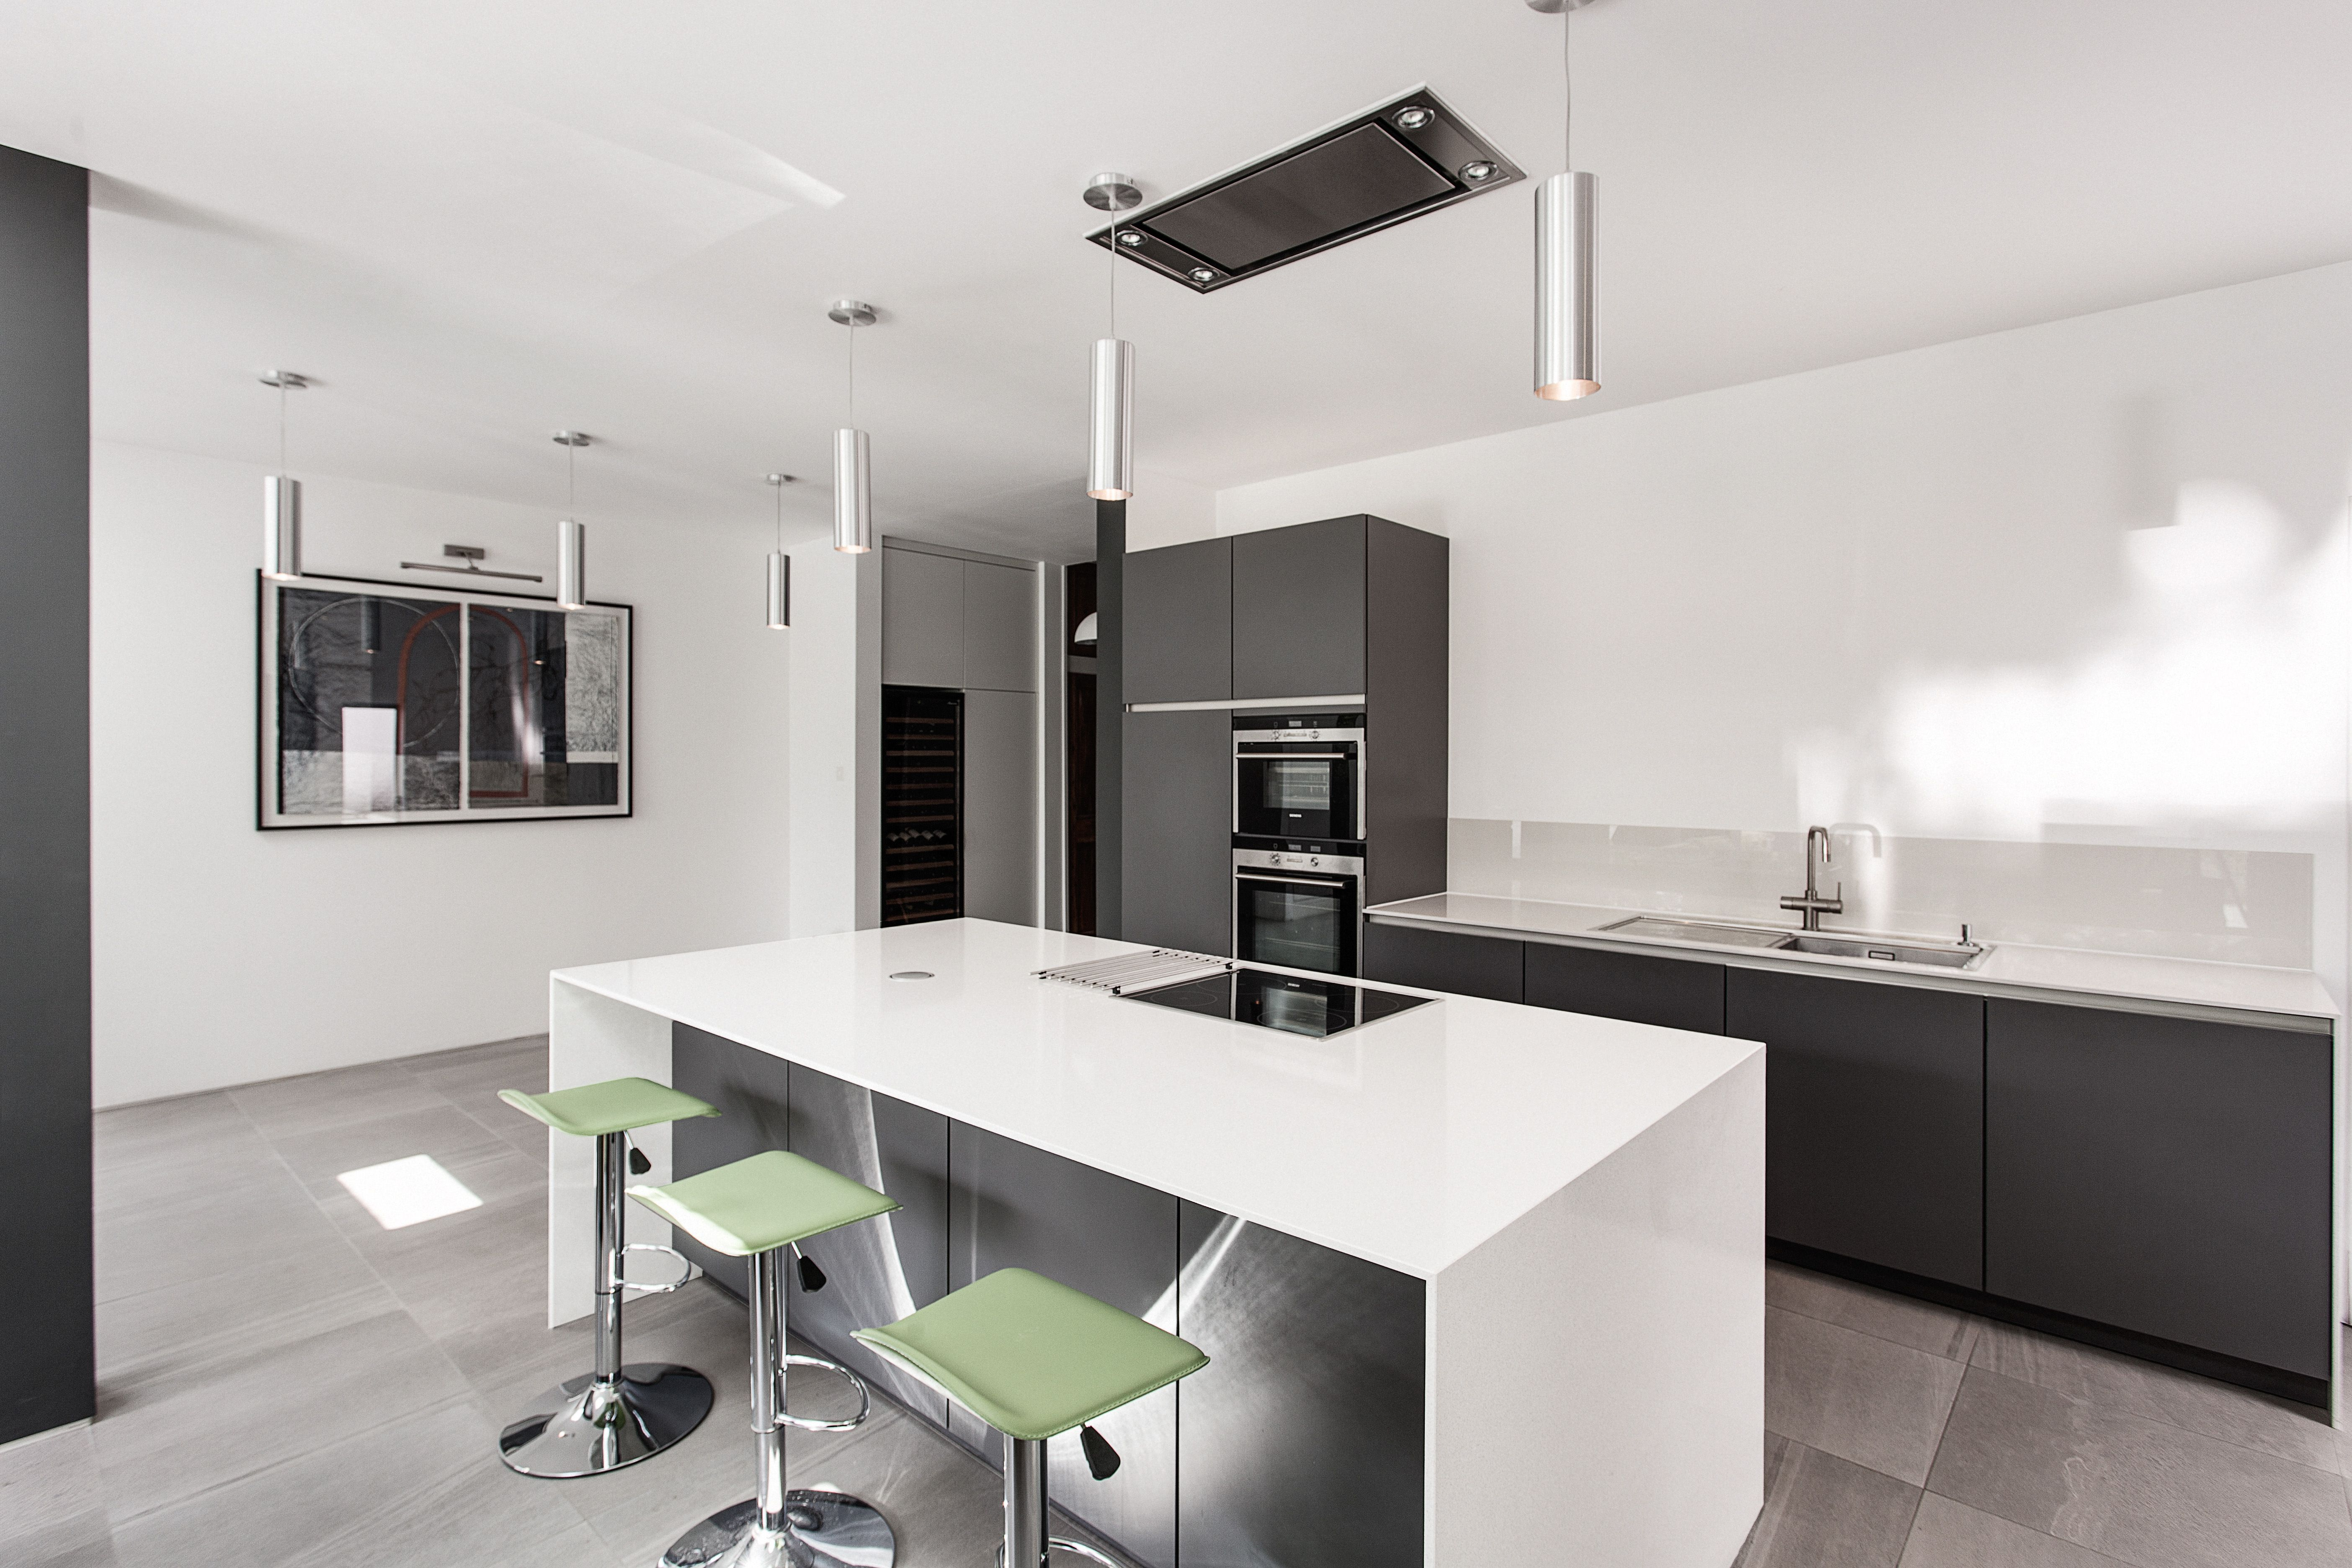 Basalt grey from SieMatic and white Silestone